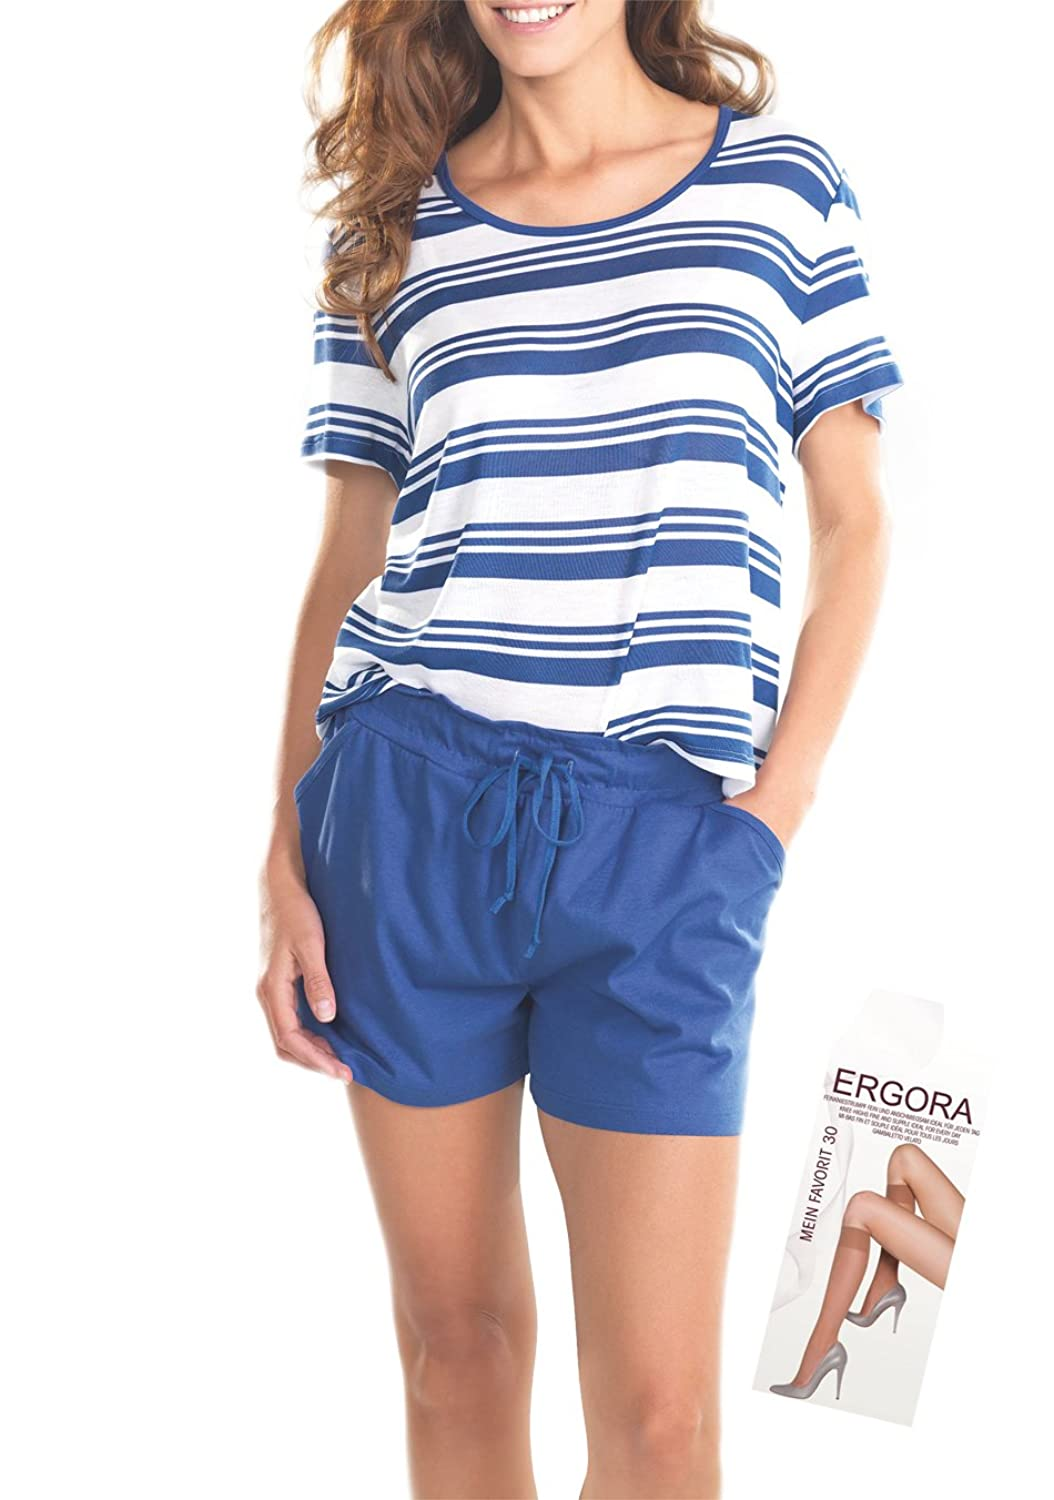 Cybele Damen Set Shorty + Shirt in Blau-Weiß 7 Gr. 36 bis 48 Homewear Single-Jersey + 1 Paar Feinkniestrümpfe